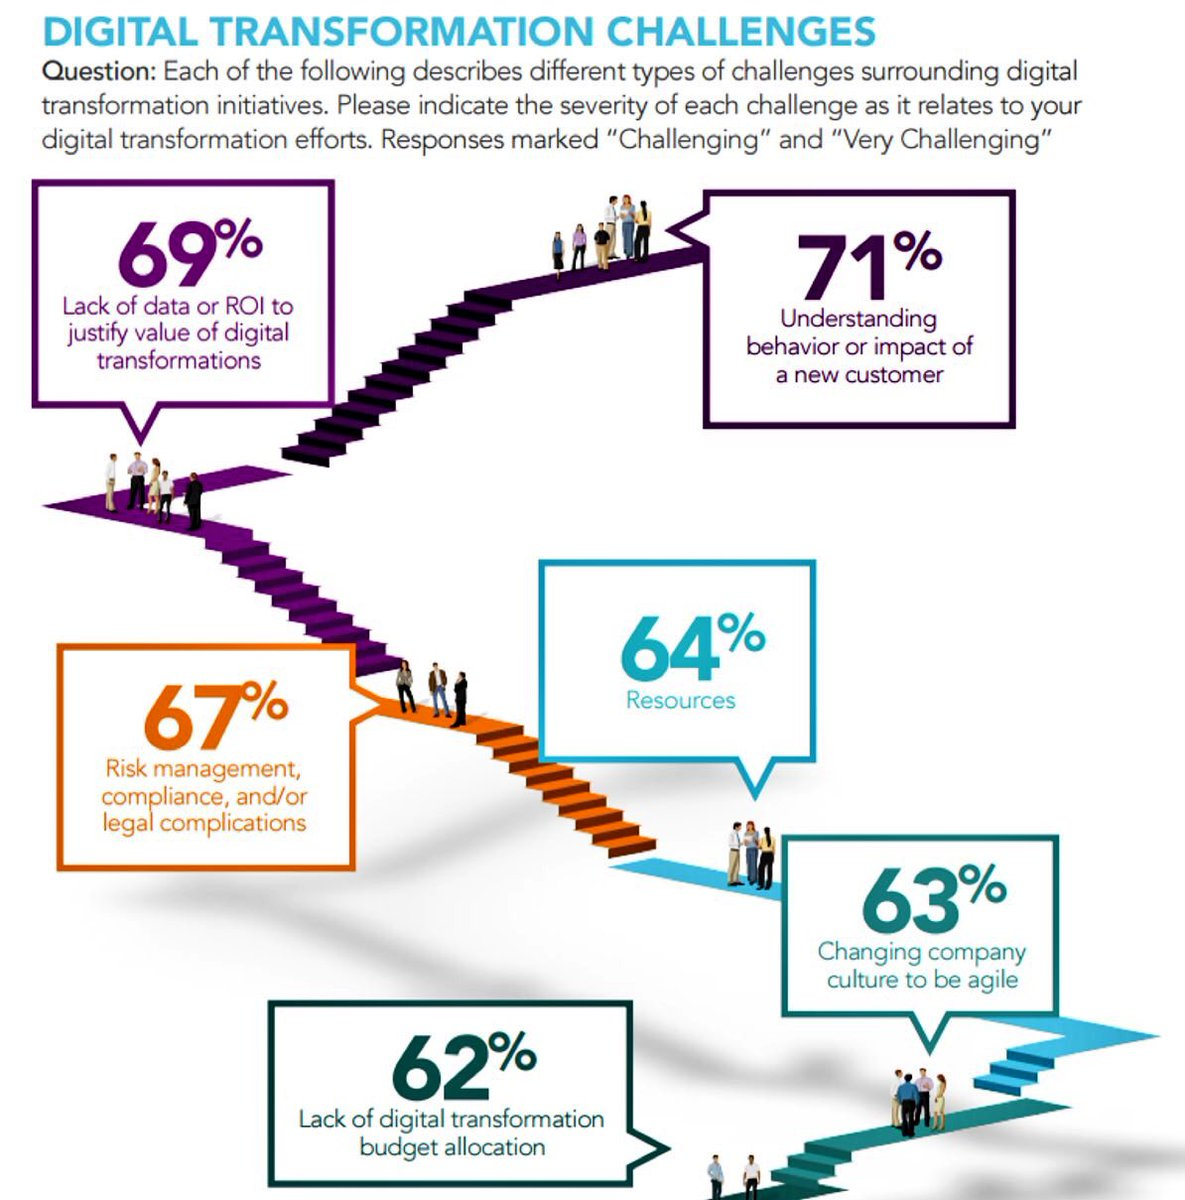 #DigitalTransformation challenges #startups #SMM #IoT #BigData #blockchain #CIO #iIoT #innovation #Disruption #AI<br>http://pic.twitter.com/1dV2FlYSGC